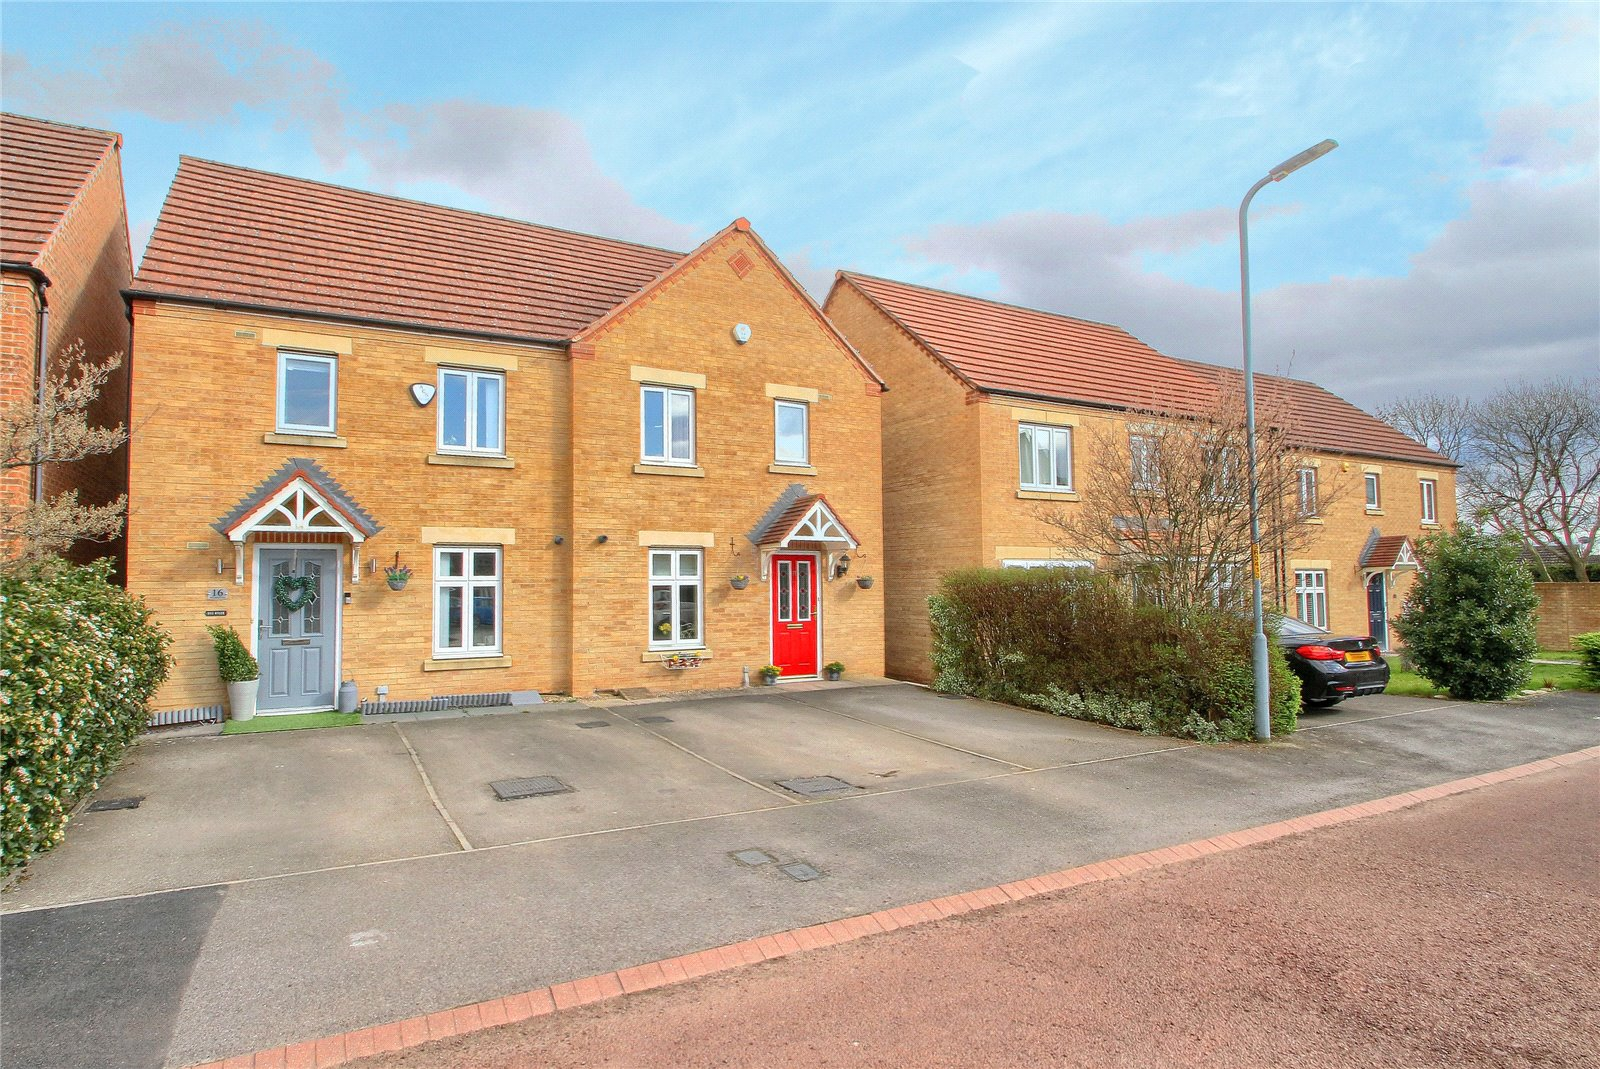 3 bed house for sale in Red Admiral Close, Stockton-on-Tees - Property Image 1